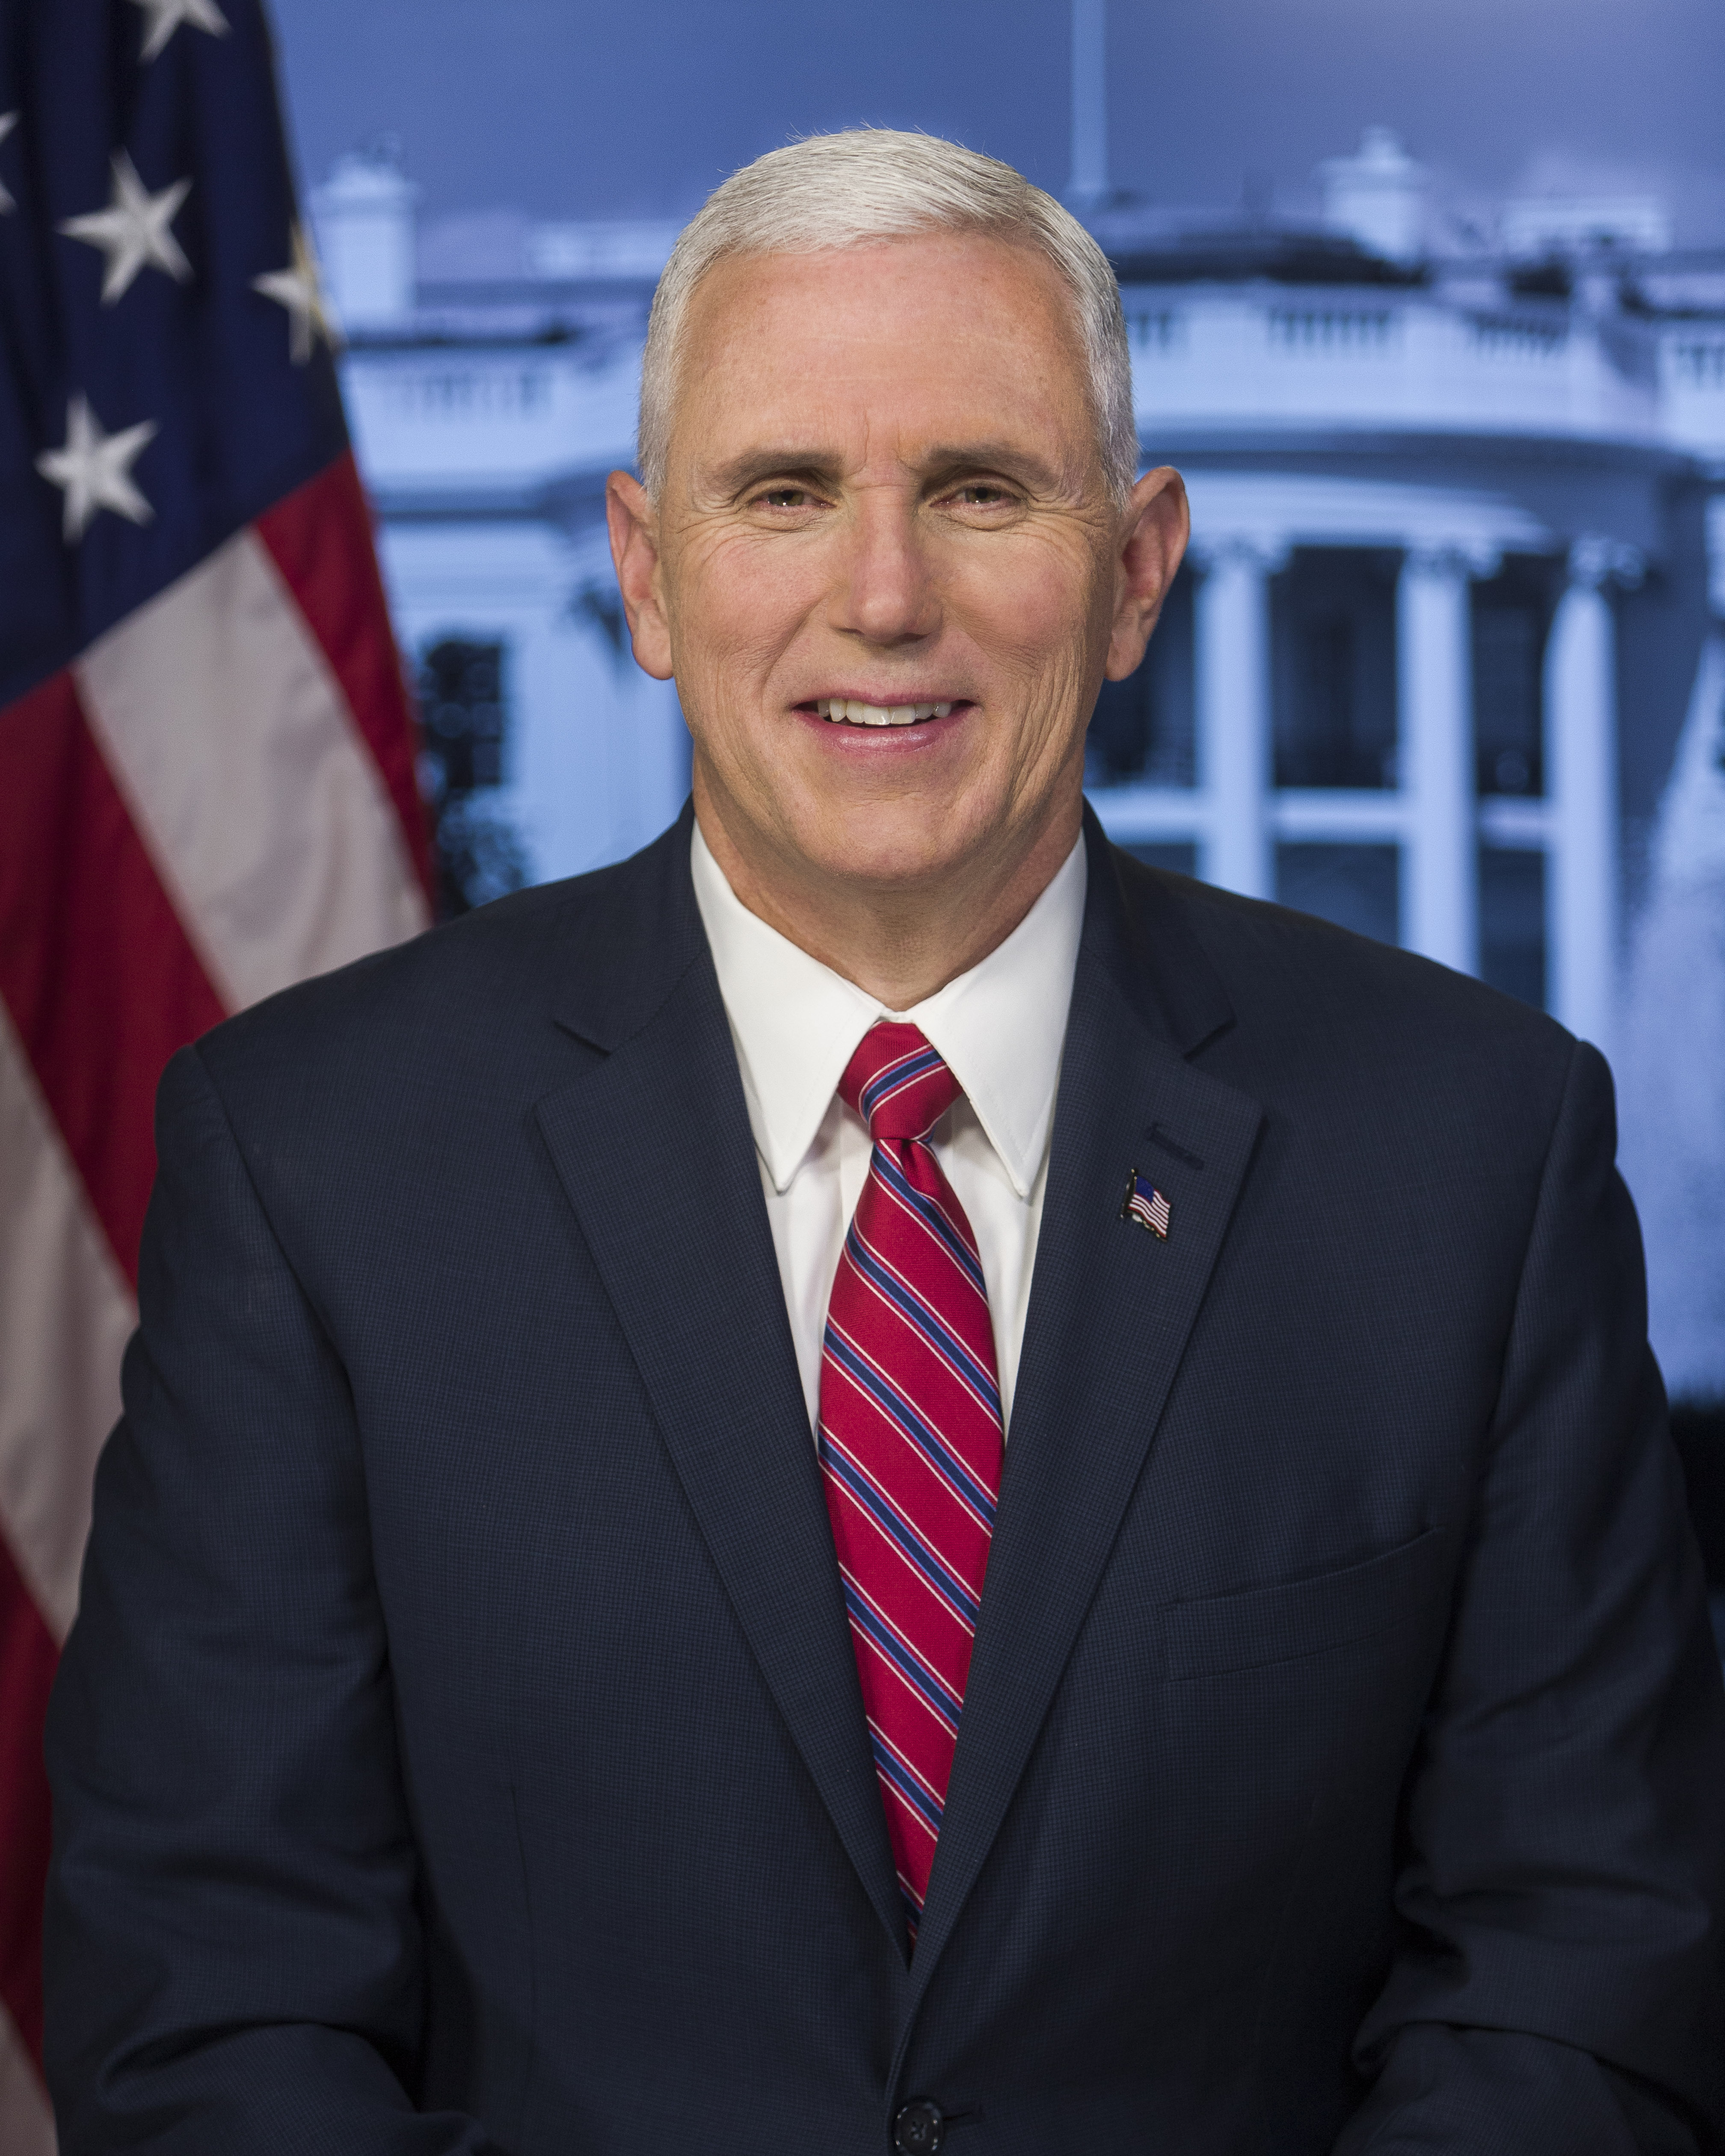 Vice President of the United States.